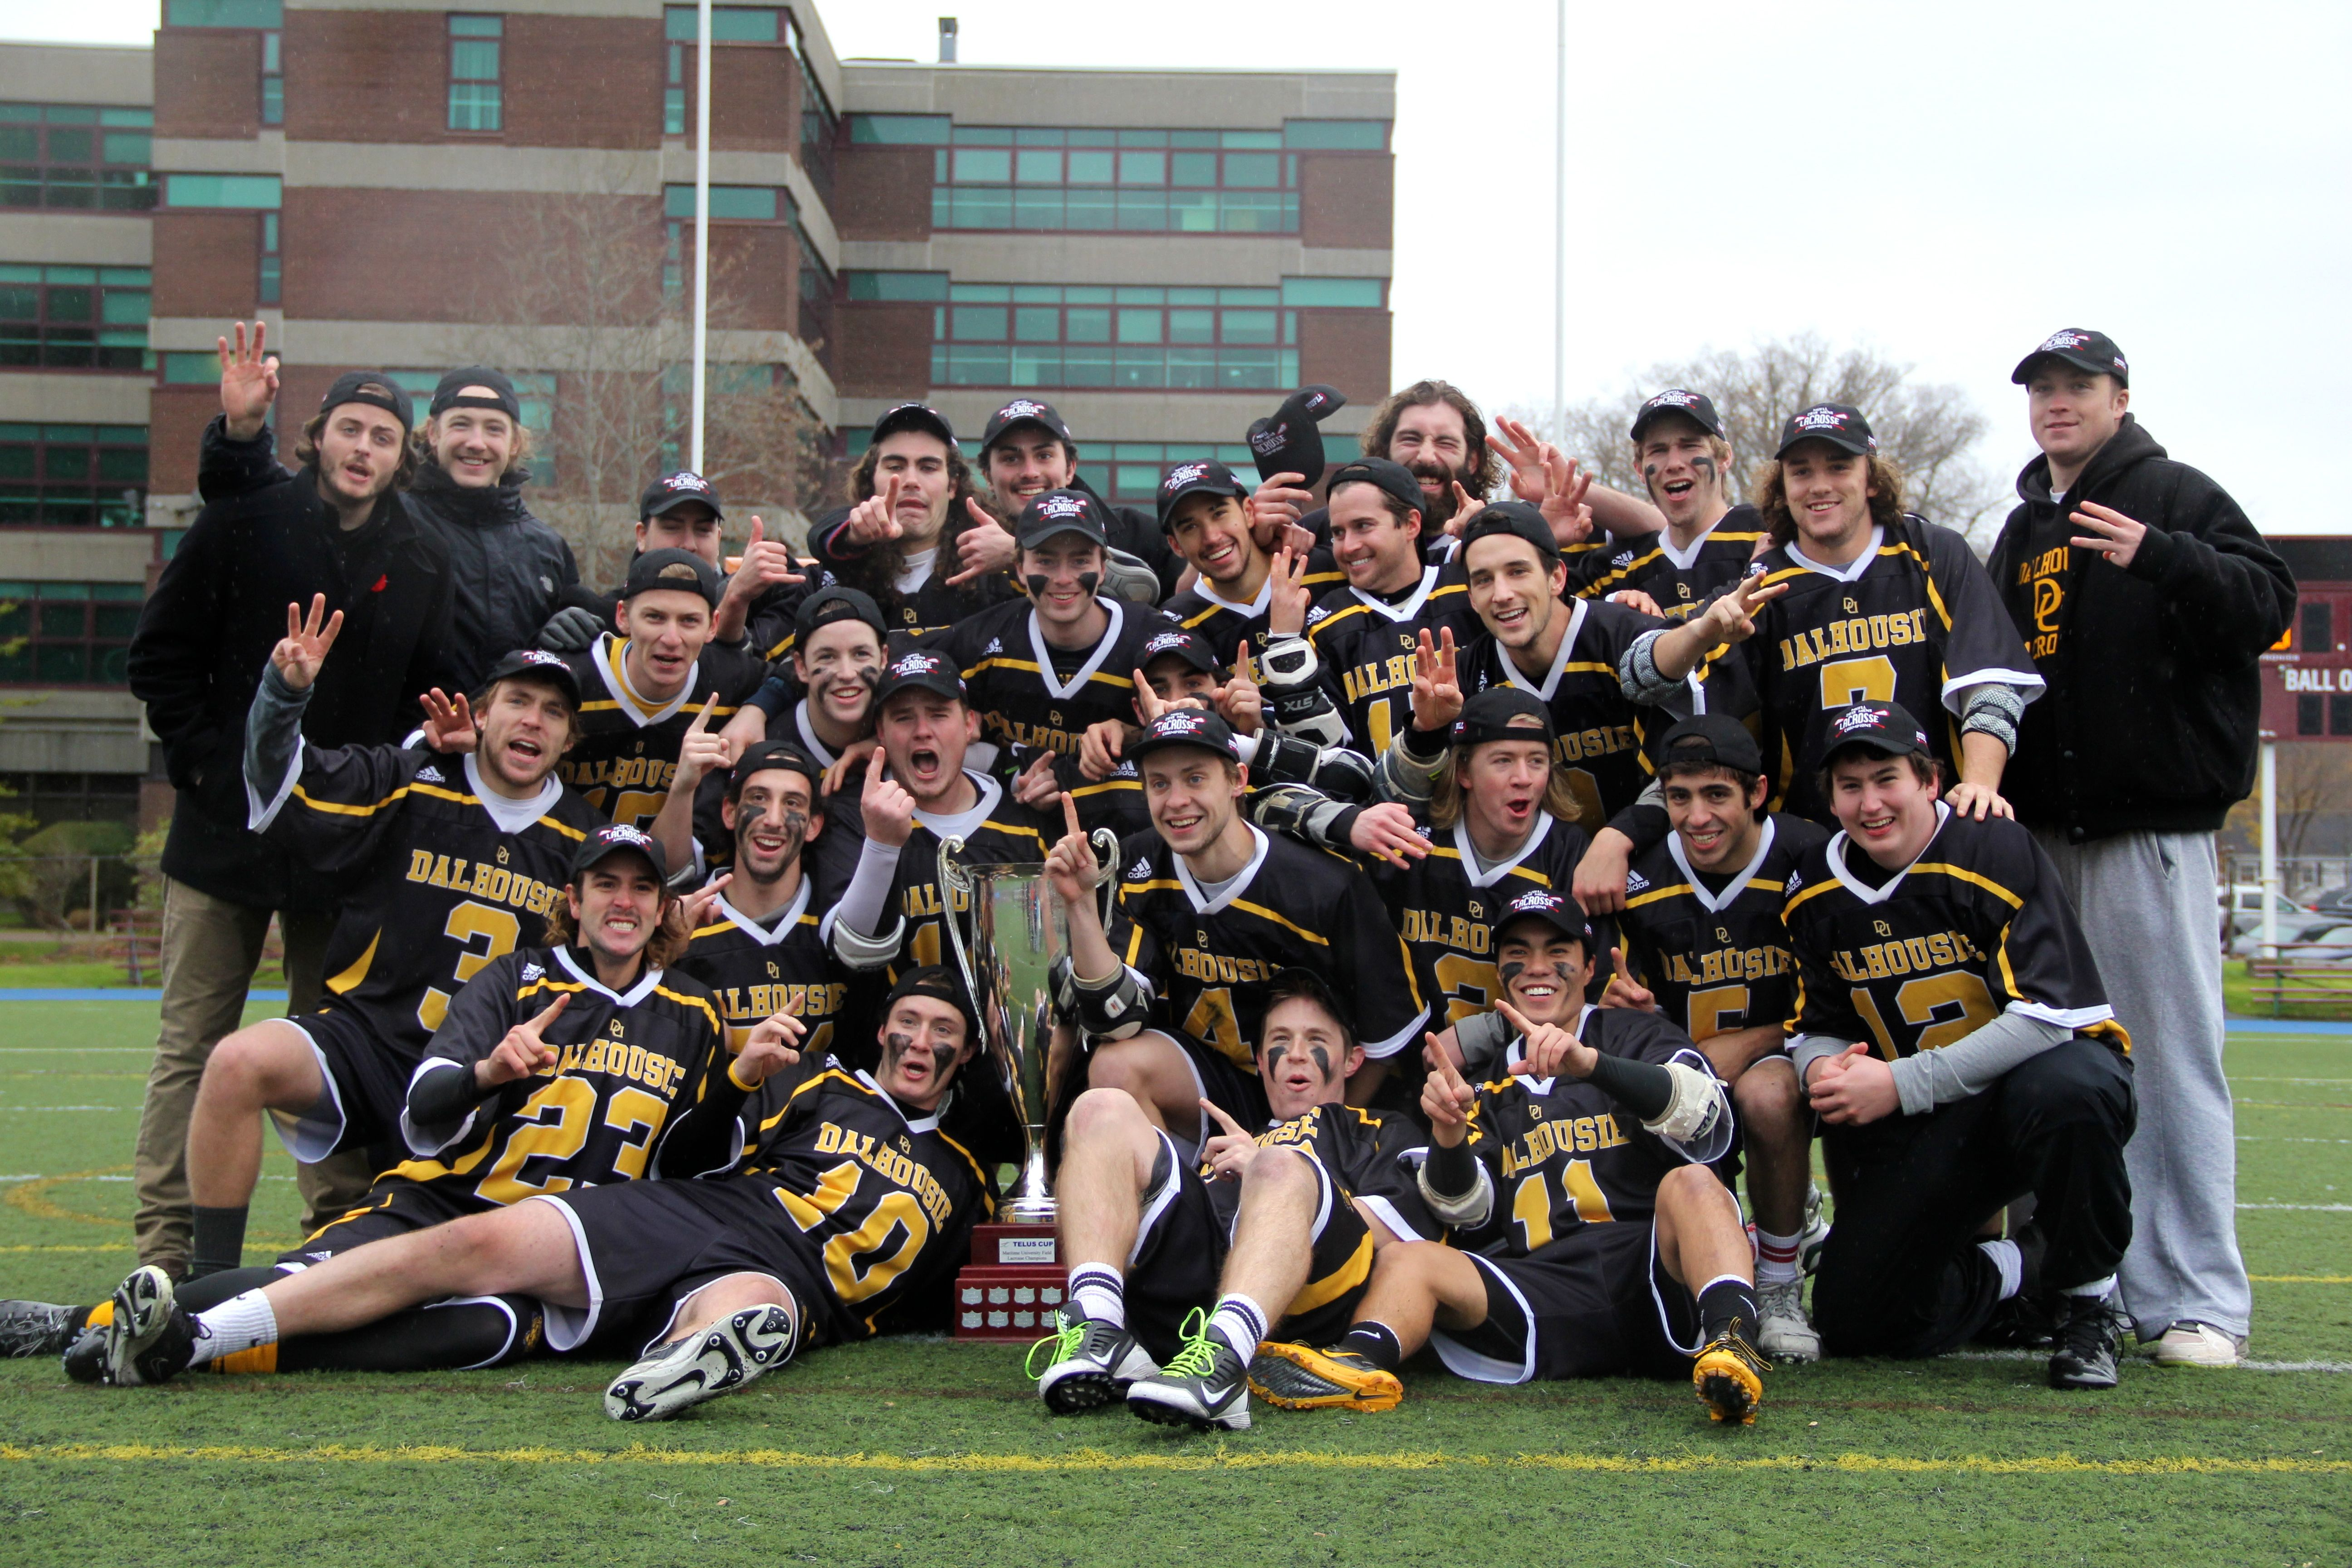 The Tigers are getting used to posing for celebratory photos. (Photo by Ian Froese)